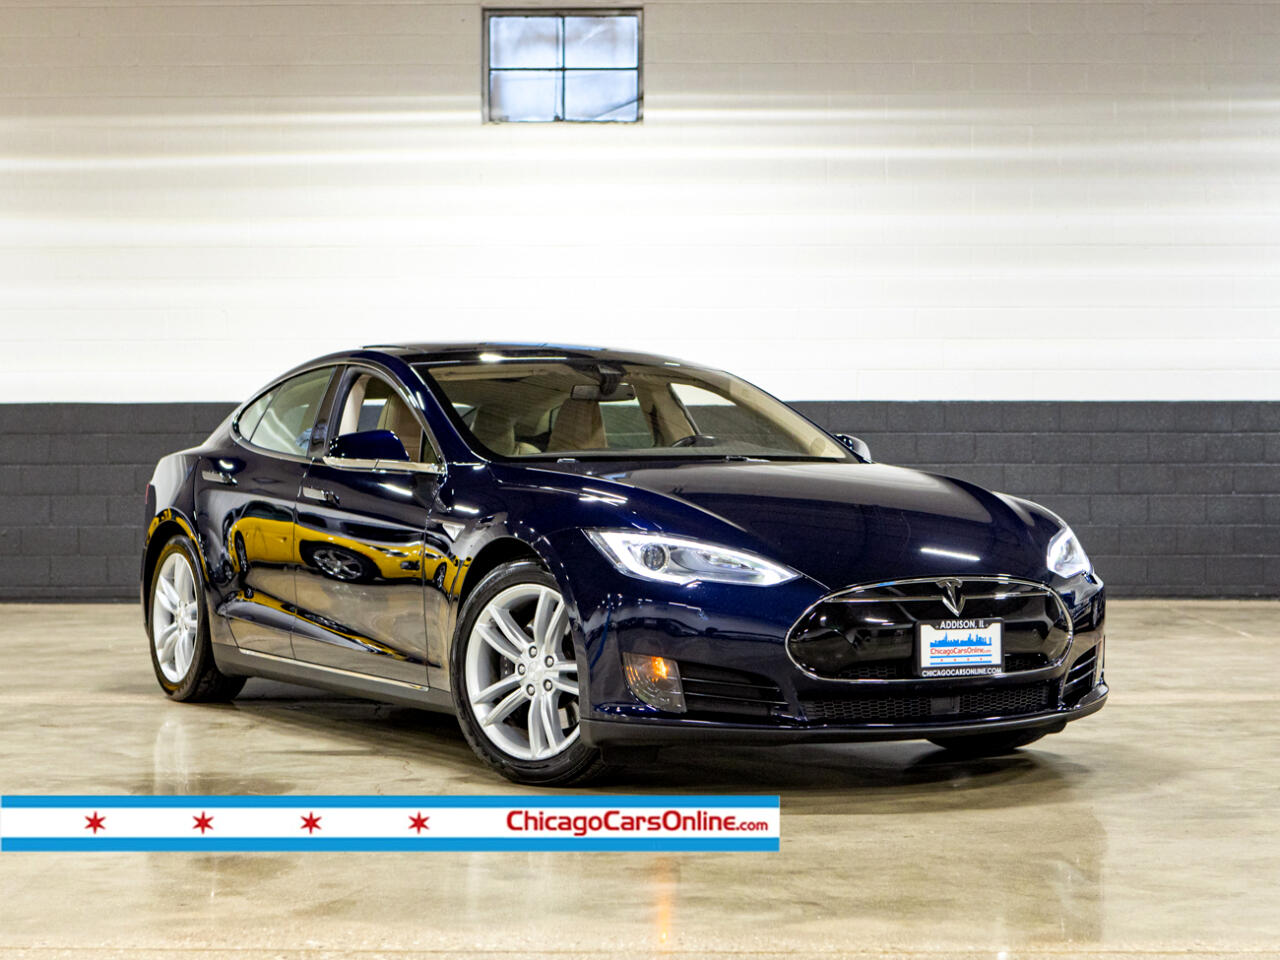 Tesla Model S 4dr Sdn AWD 85D 2015